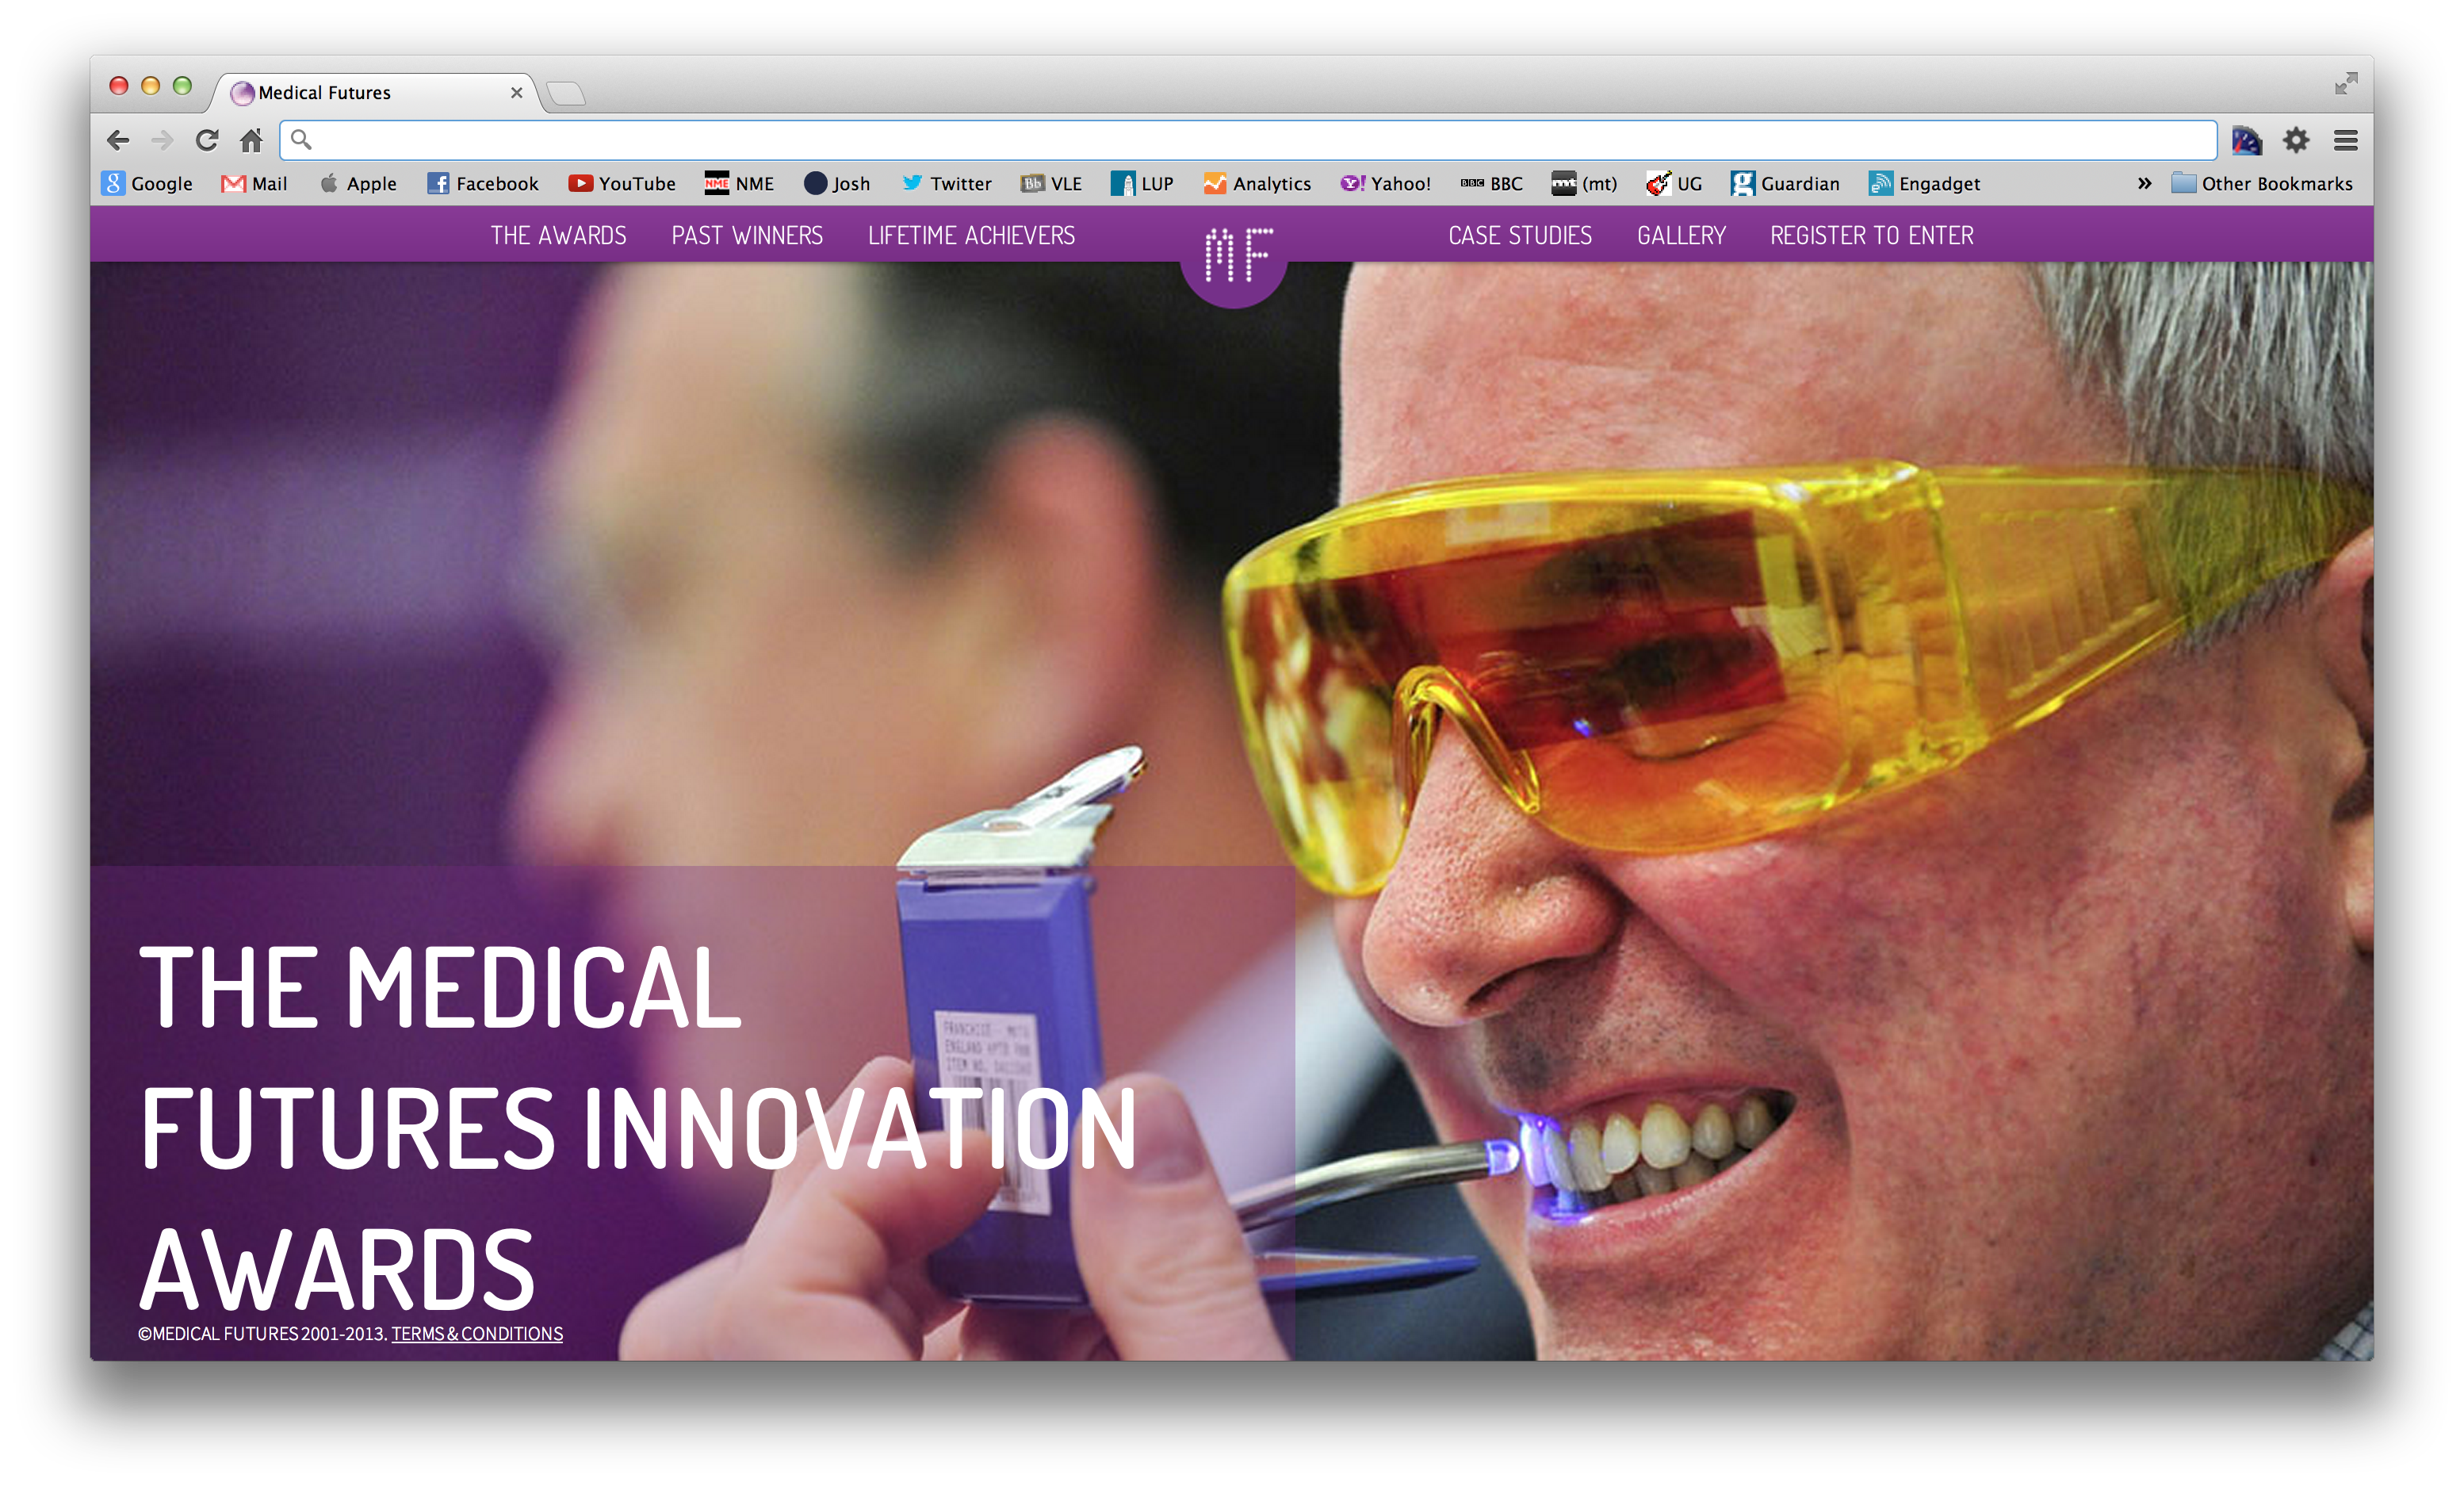 Medical Futures Innovation Award